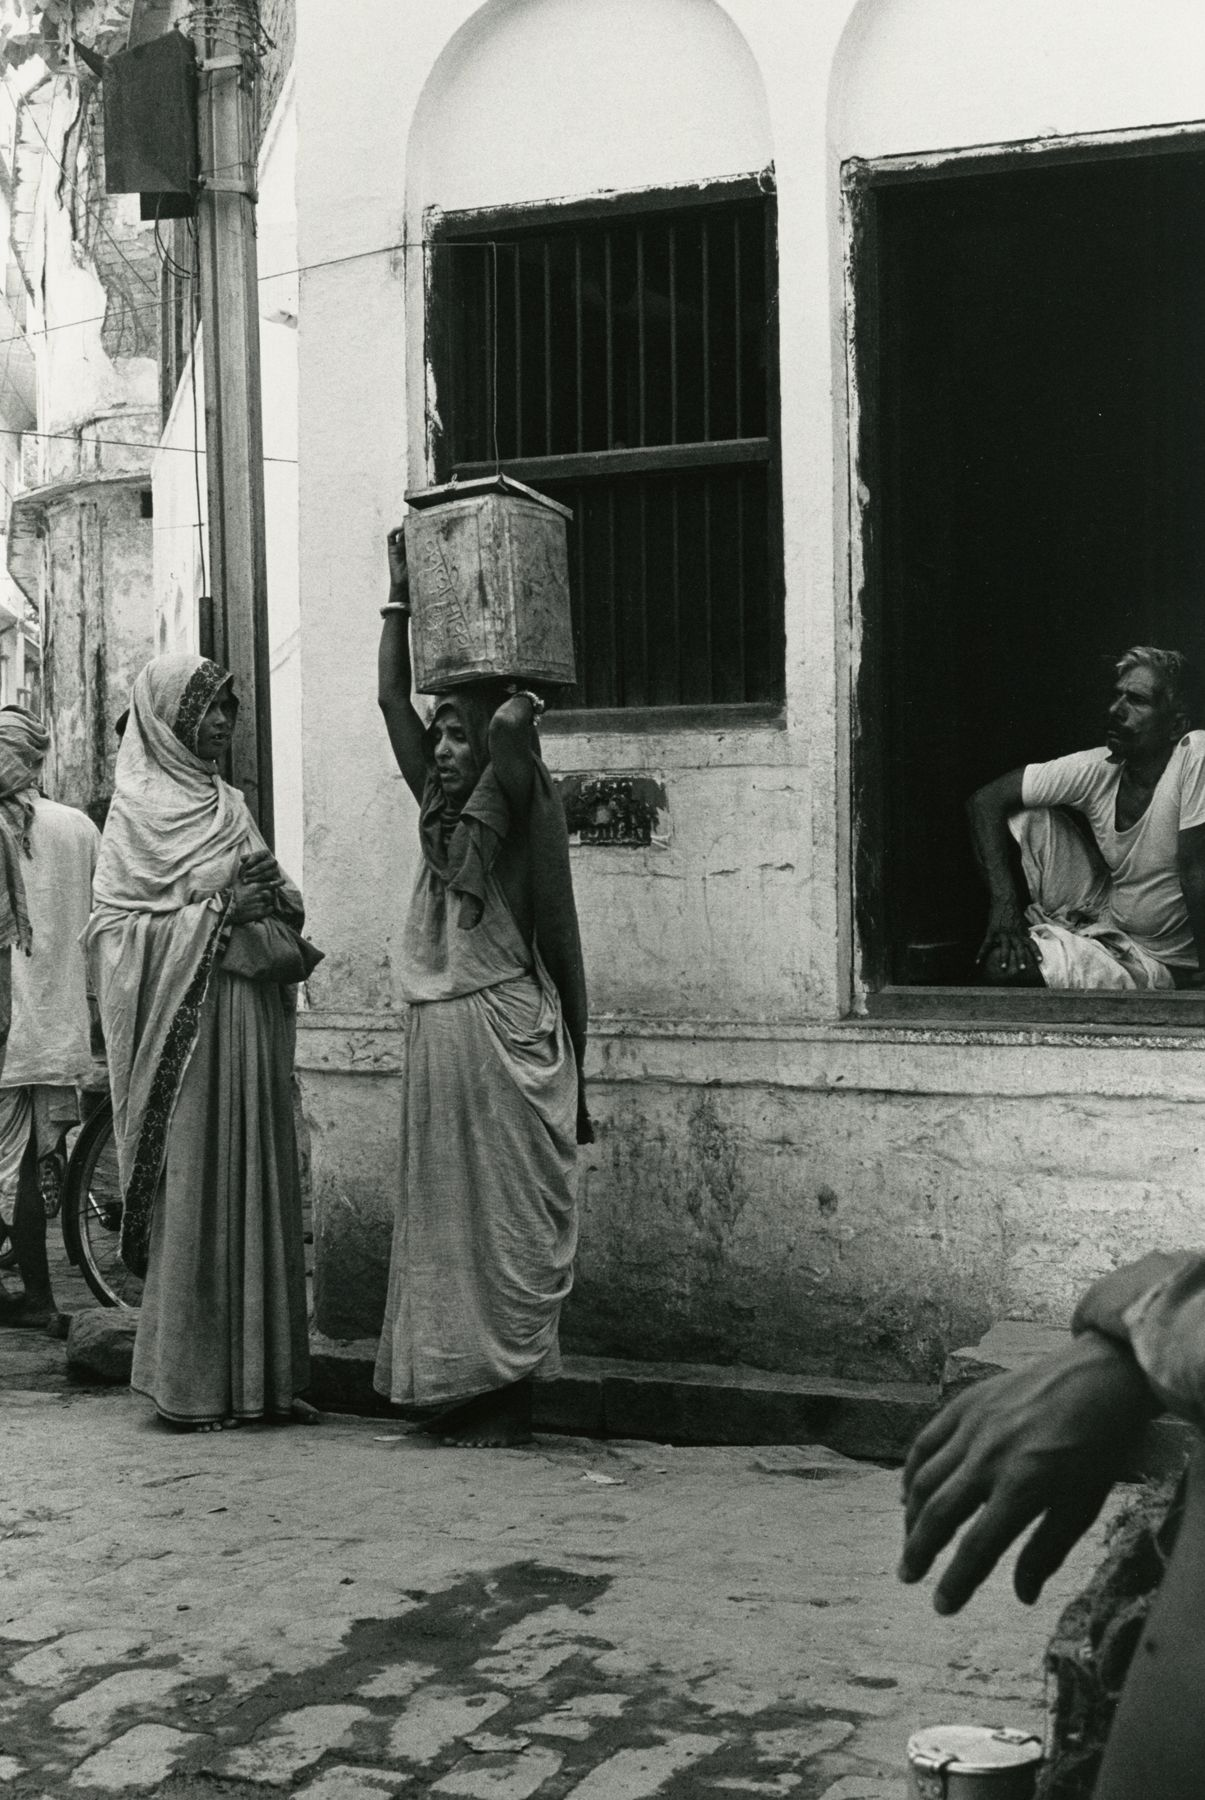 William Gedney: In India, Howard Greenberg Gallery, 2017